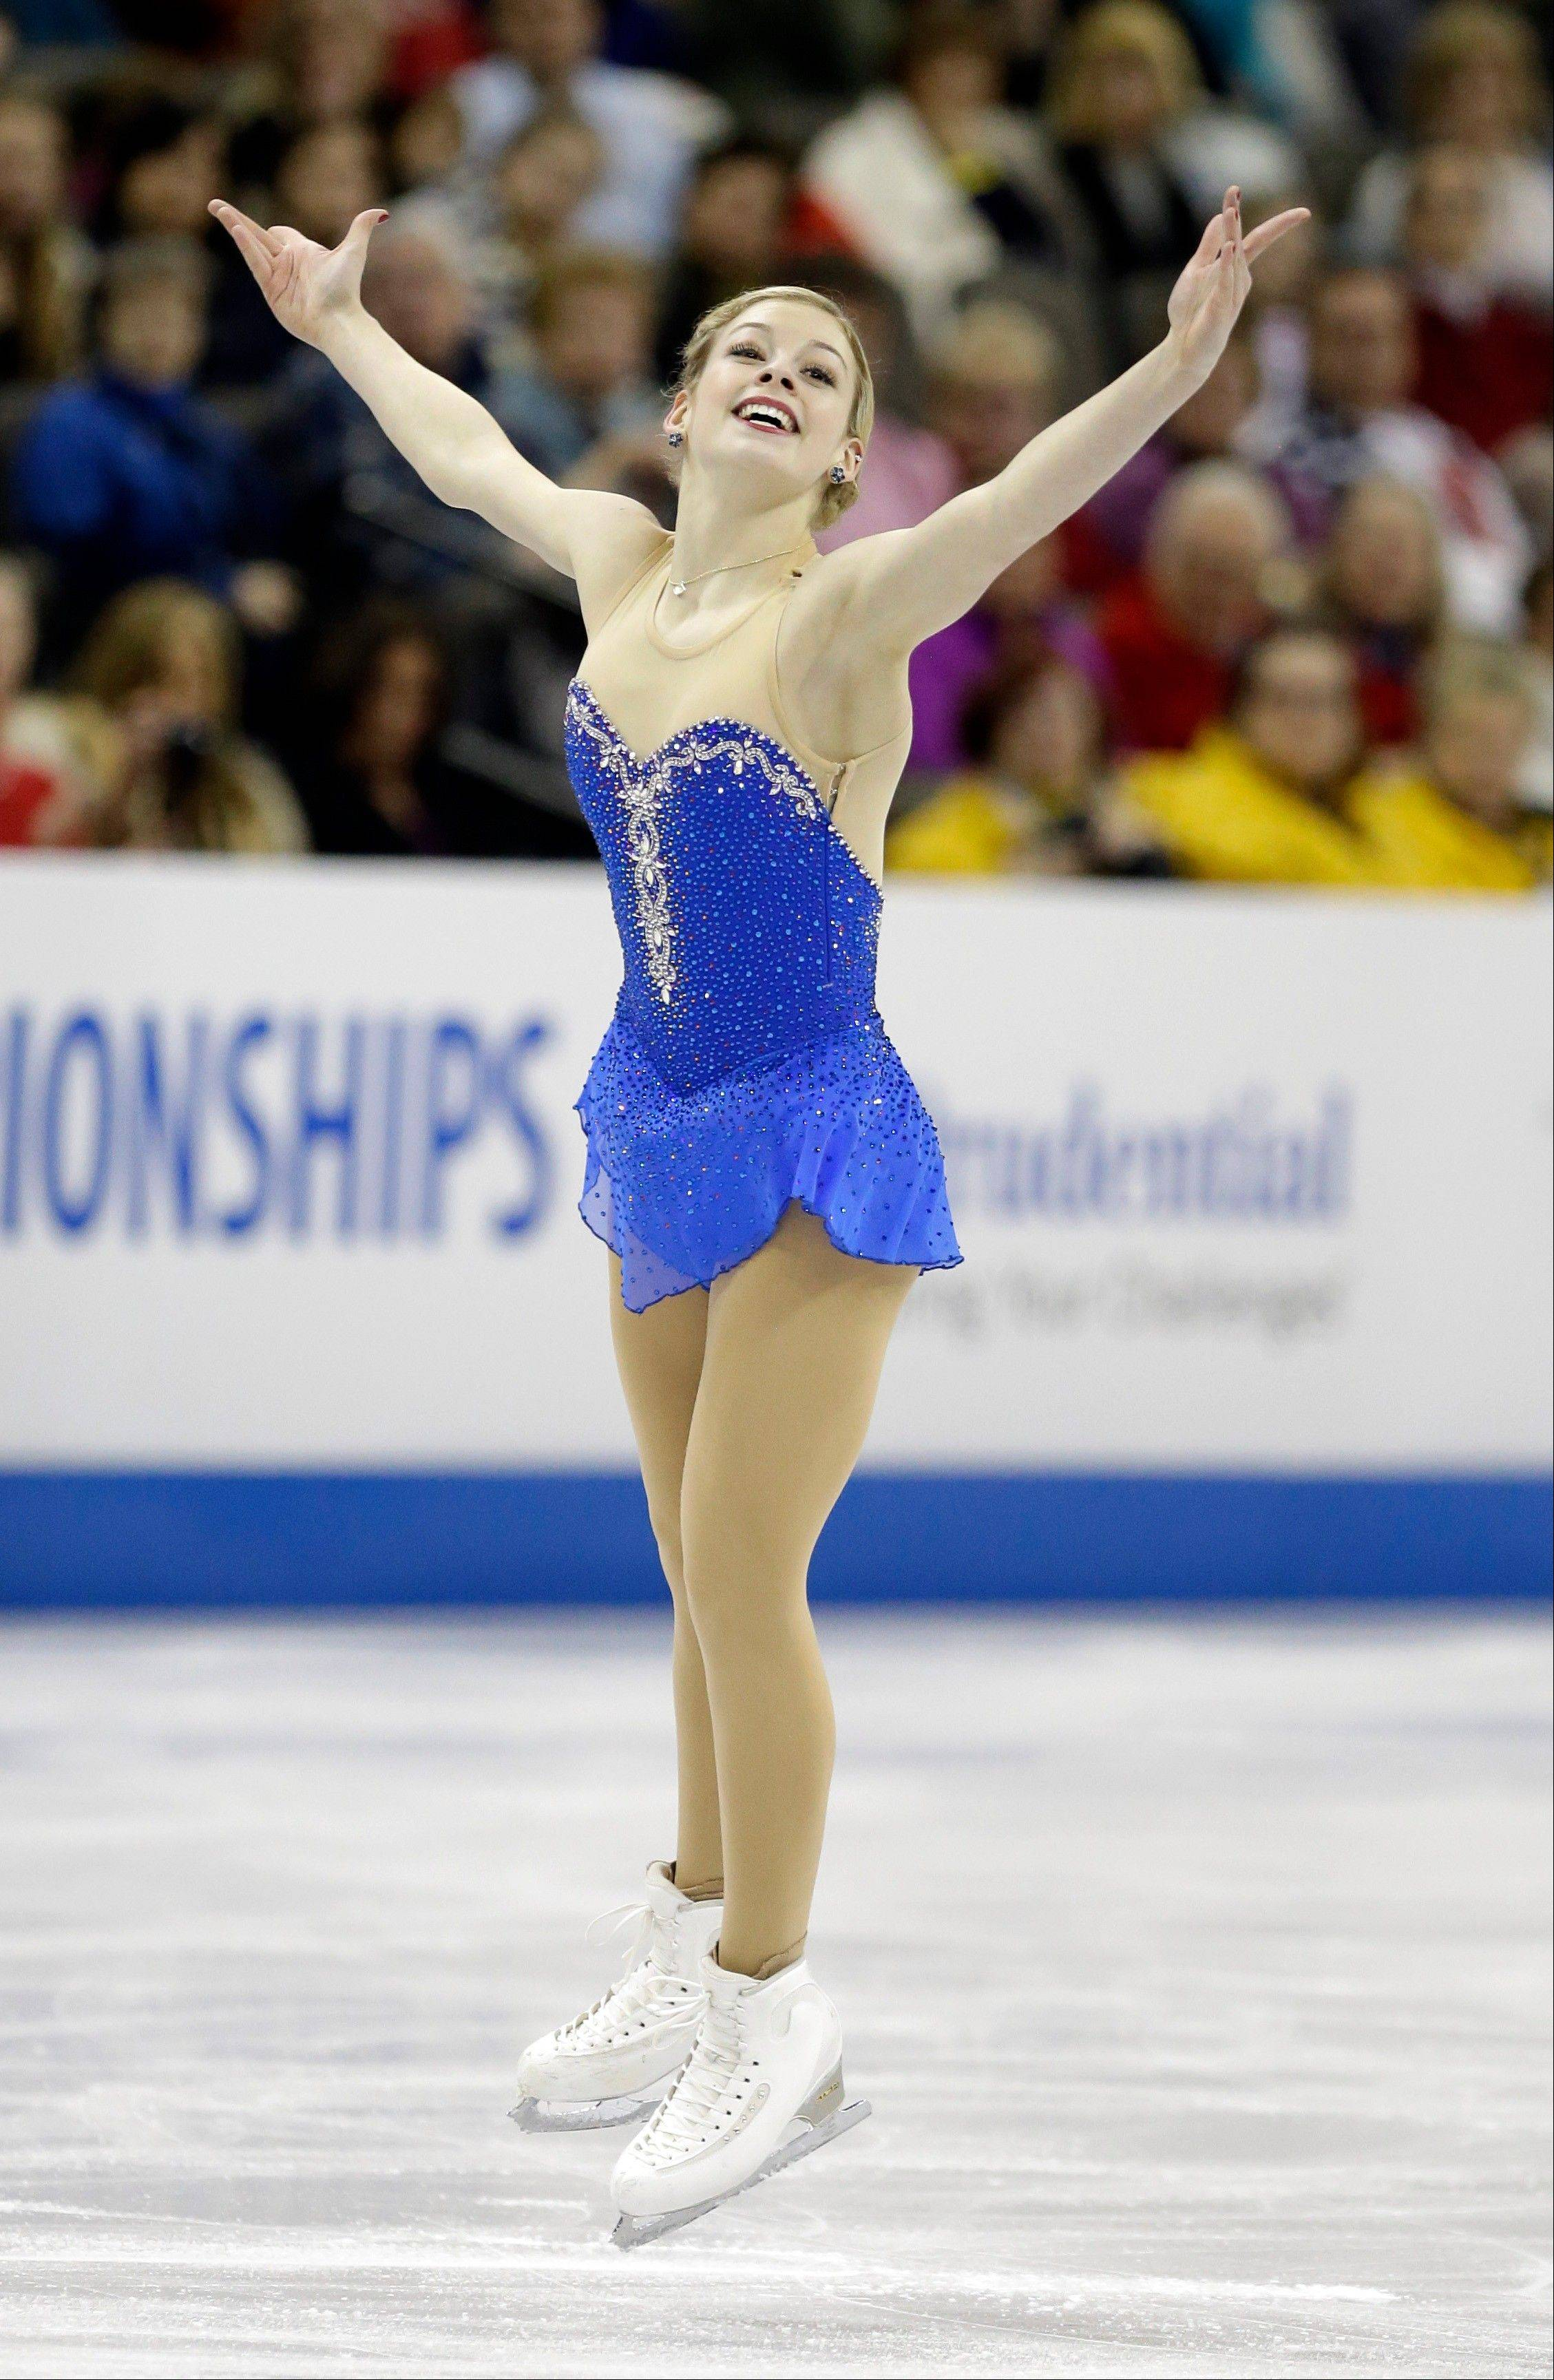 Gracie Gold of Elk Grove Village won the senior ladies free skate program at the U.S. figure skating championships, allowing her to finish second overall.